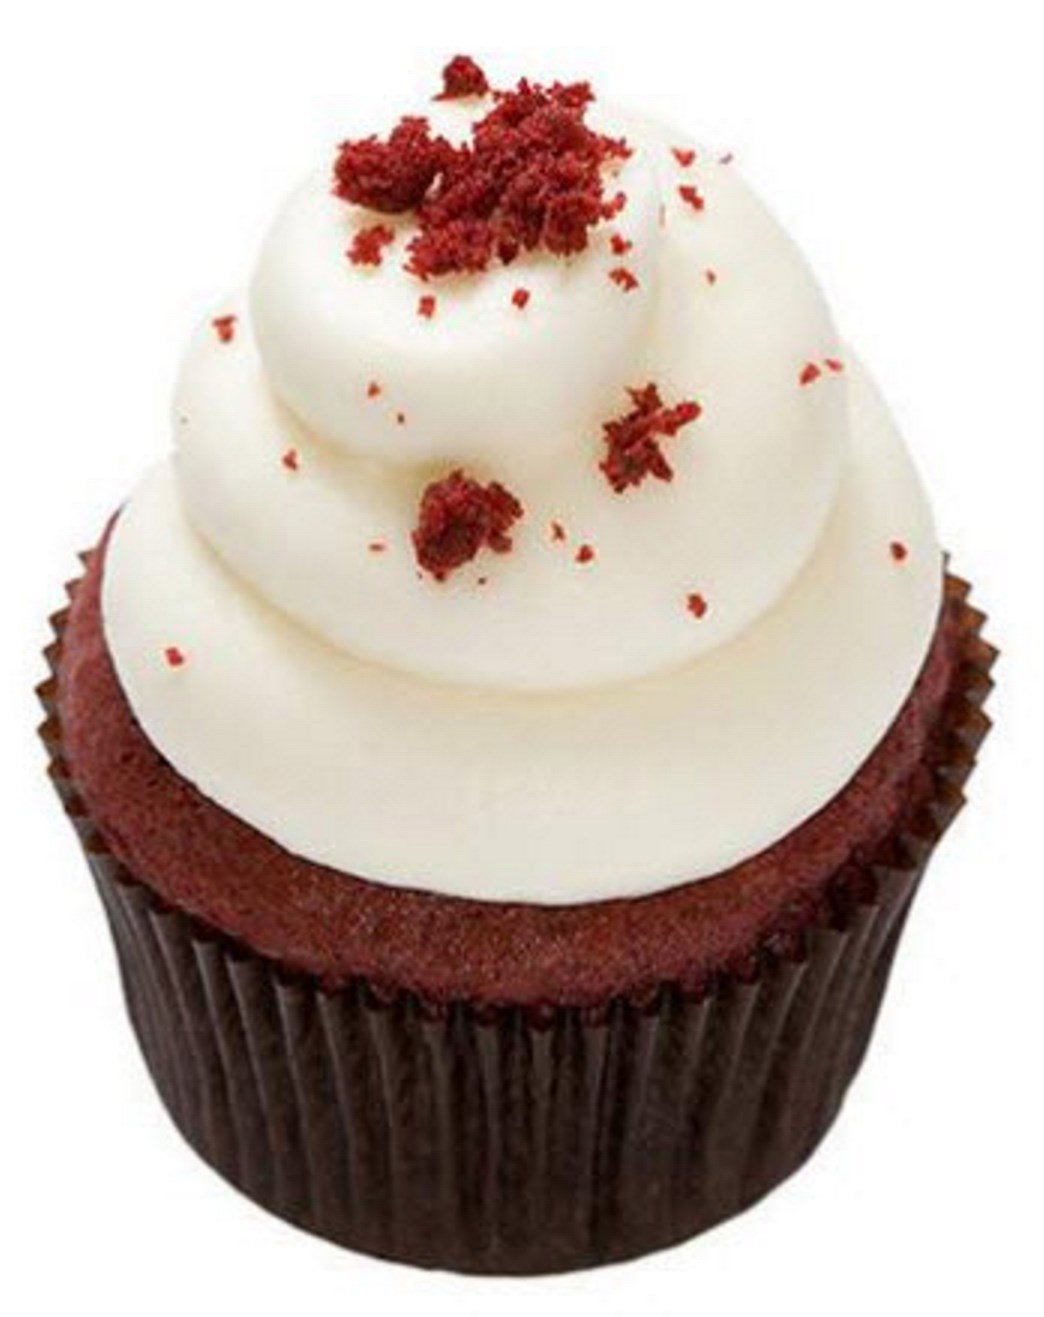 Red Velvet Cupcakes - Dessert - Cream Cheese Frosting - 12 Pack - Baked Fresh Day of Order by House of Cupcakes